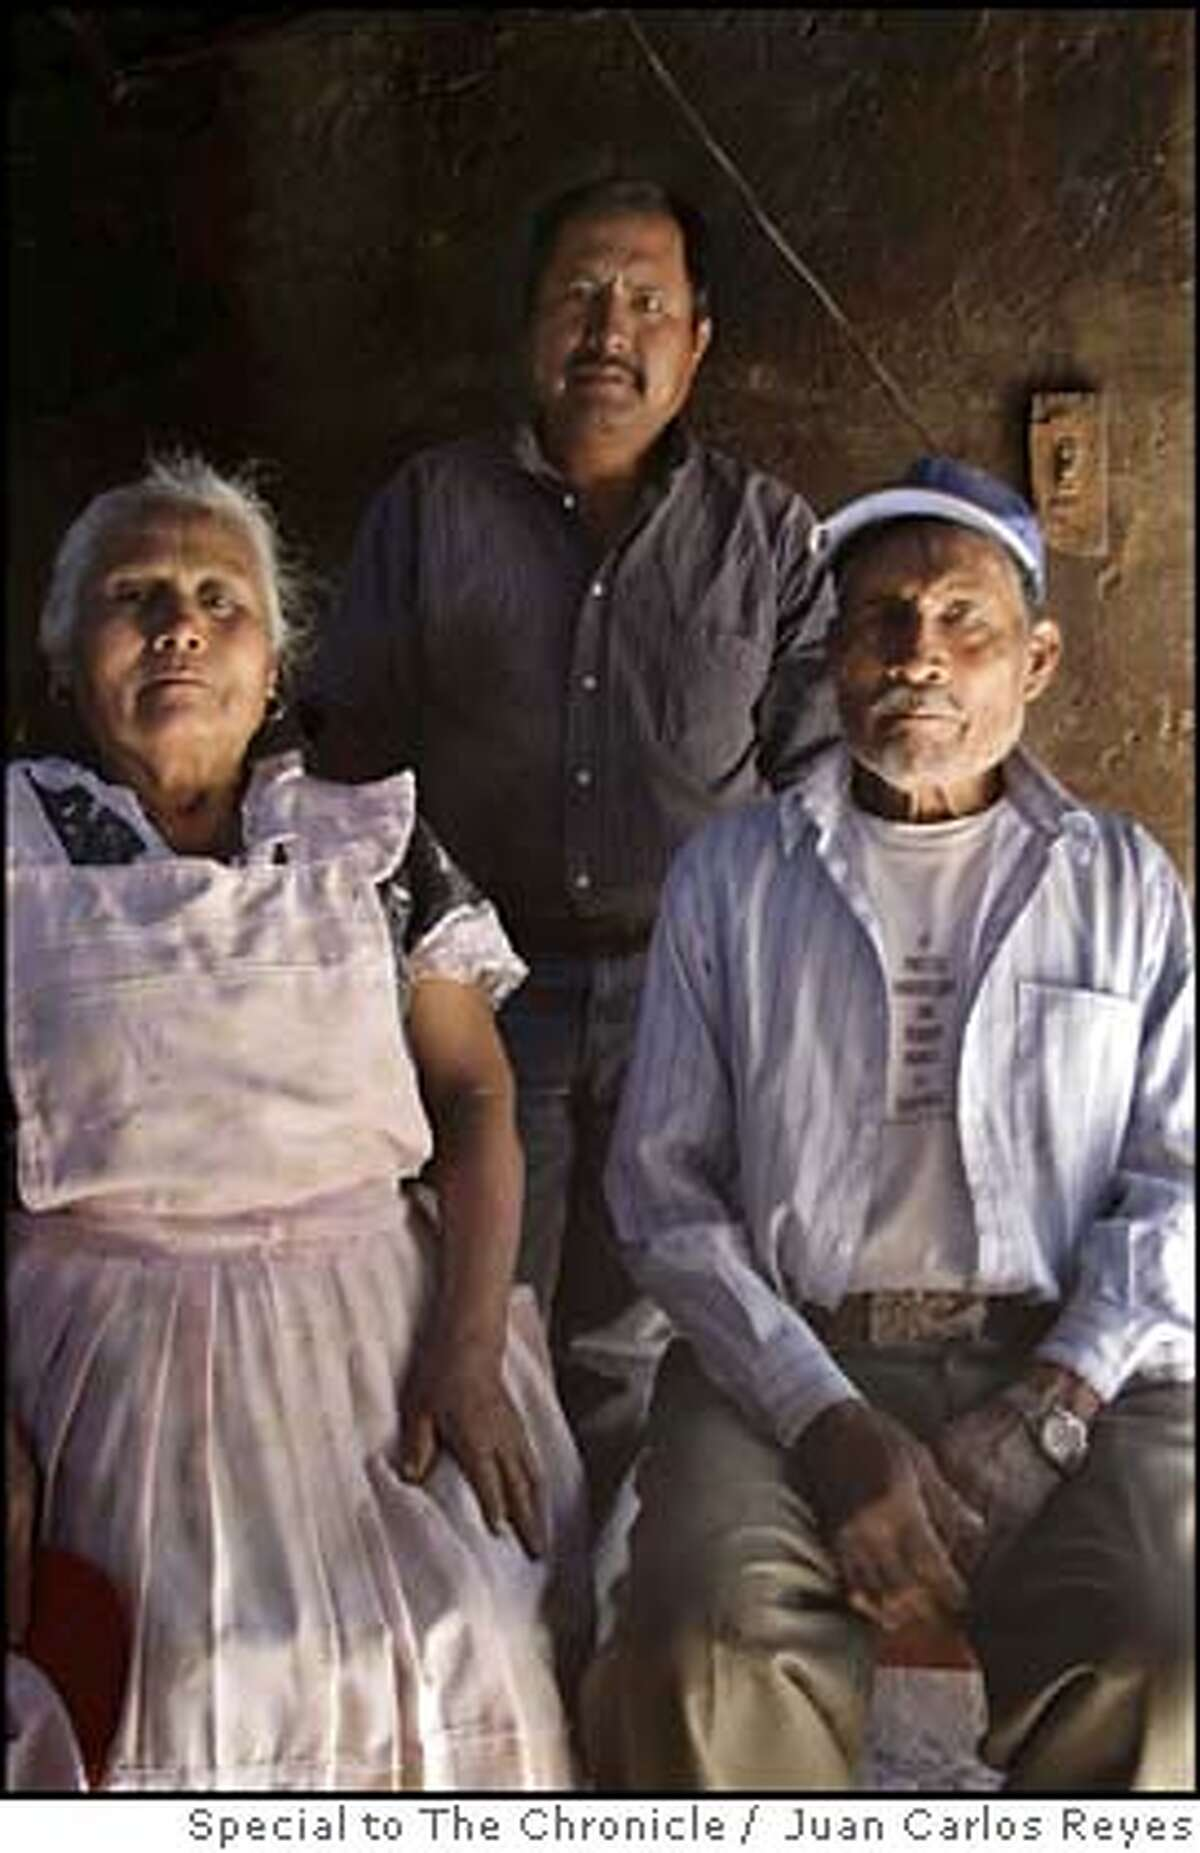 ###Live Caption:Jesus Leon, co-founder of a local environmental group, stands between his father, Agustin Leon, and mother, Guillermina Santos. Leon is at his parent's home in the town of San Isidro Tilantongo in the southern Mexican state of Oaxaca.###Caption History:Jesus Leon, co-founder of a local environmental group, stands between his father, Agustin Leon, and mother, Guillermina Santos. Leon is at his parent's home in the town of San Isidro Tilantongo in the southern Mexican state of Oaxaca.###Notes:###Special Instructions: